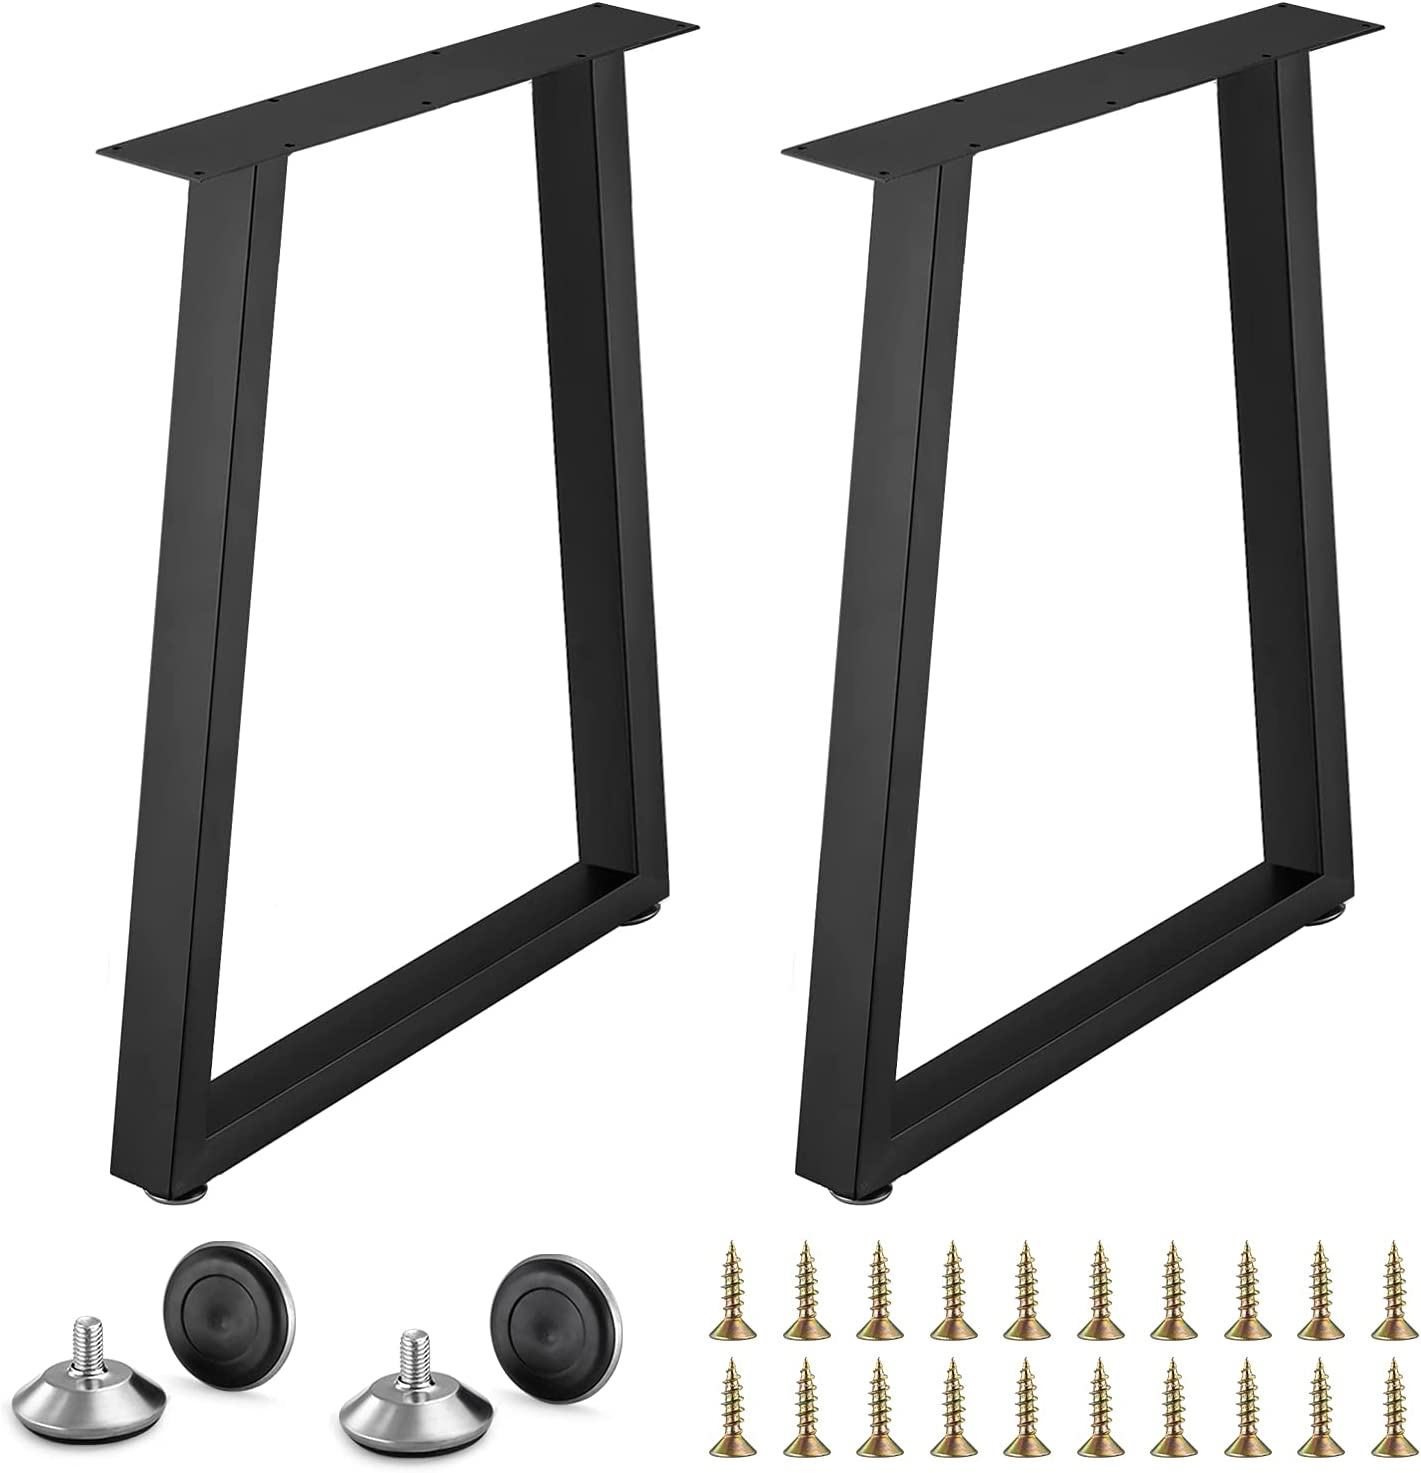 2 Pack Industrial Metal Table Legs Iron Desk Legs Vintage Stainless Steel Furniture Decorations Legs for Coffee, Dinner Table (28 Inch X 18 Inch)